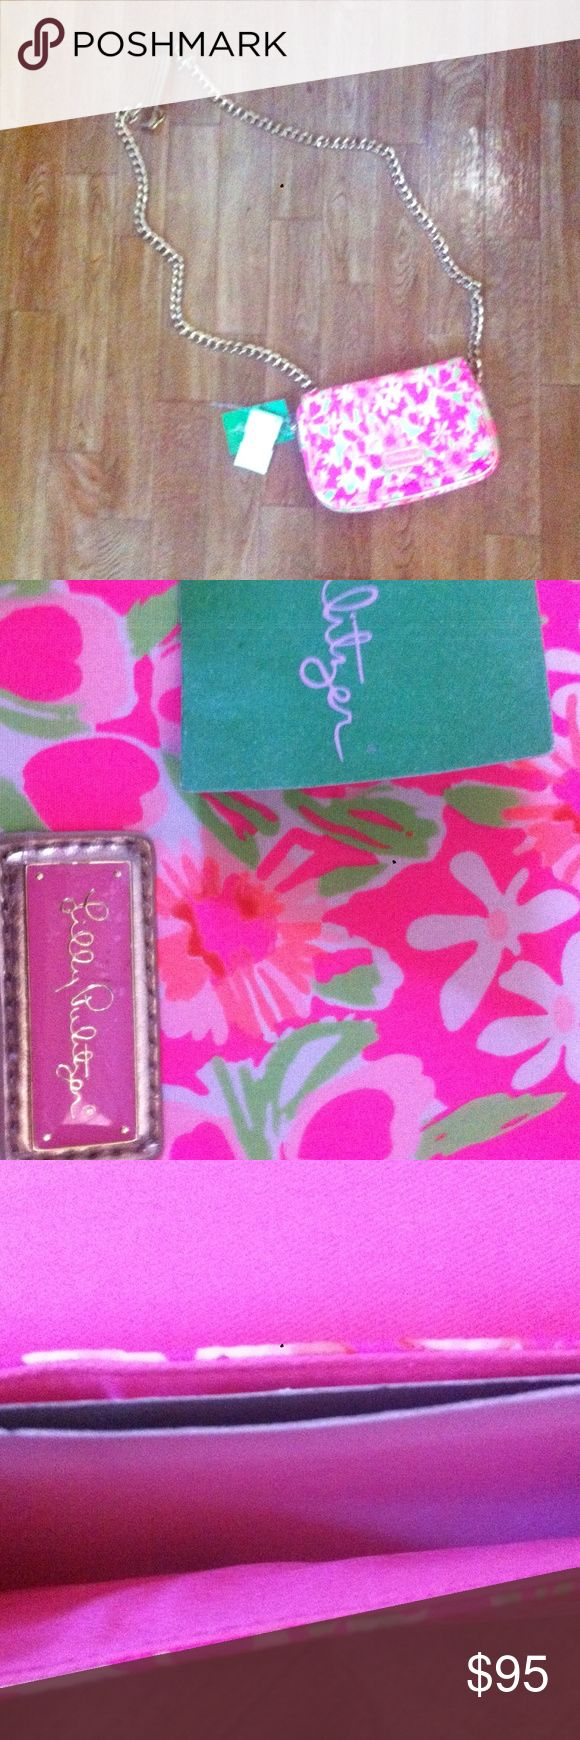 CELEBRATE Lilly sale & buy this for $75 today!! girly, chic, and NWT! Lilly Pulitzer Bags Crossbody Bags